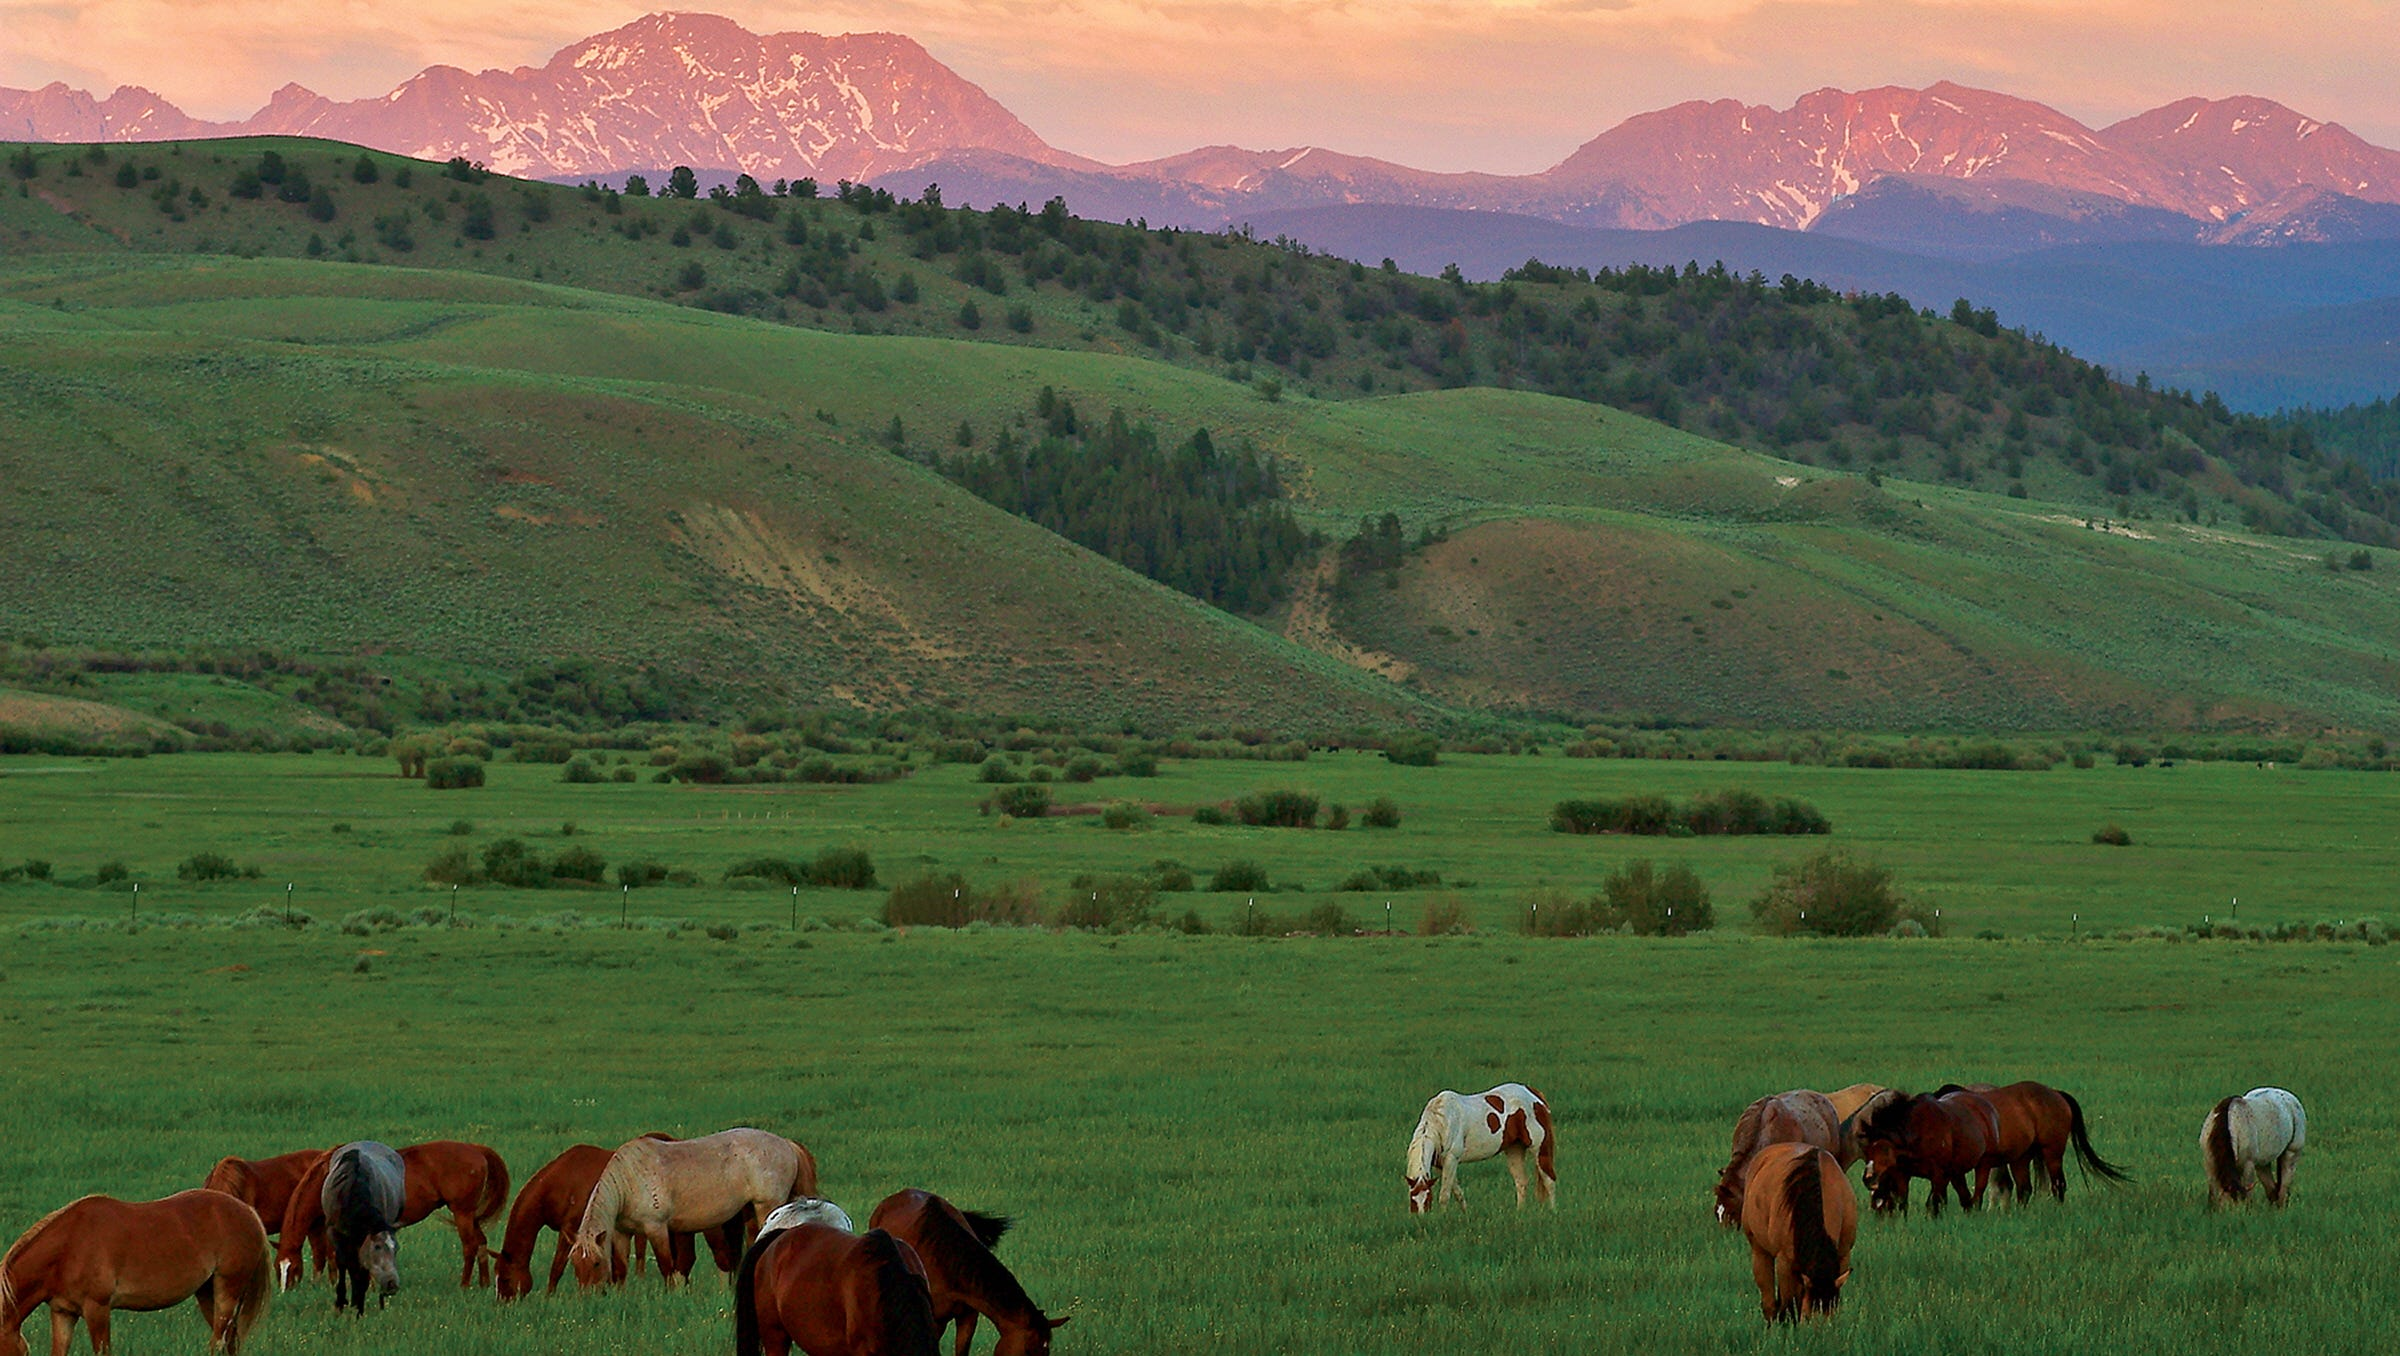 Old-fashioned dude ranches are attracting a new breed of city slickers looking to unplug from modern life, says Gavin Ehringer, author of '100 Best Guest Ranch Vacations in North America.' But now they've expanded their offerings. Pictured, C Lazy U Ranch, in Granby, Colo.